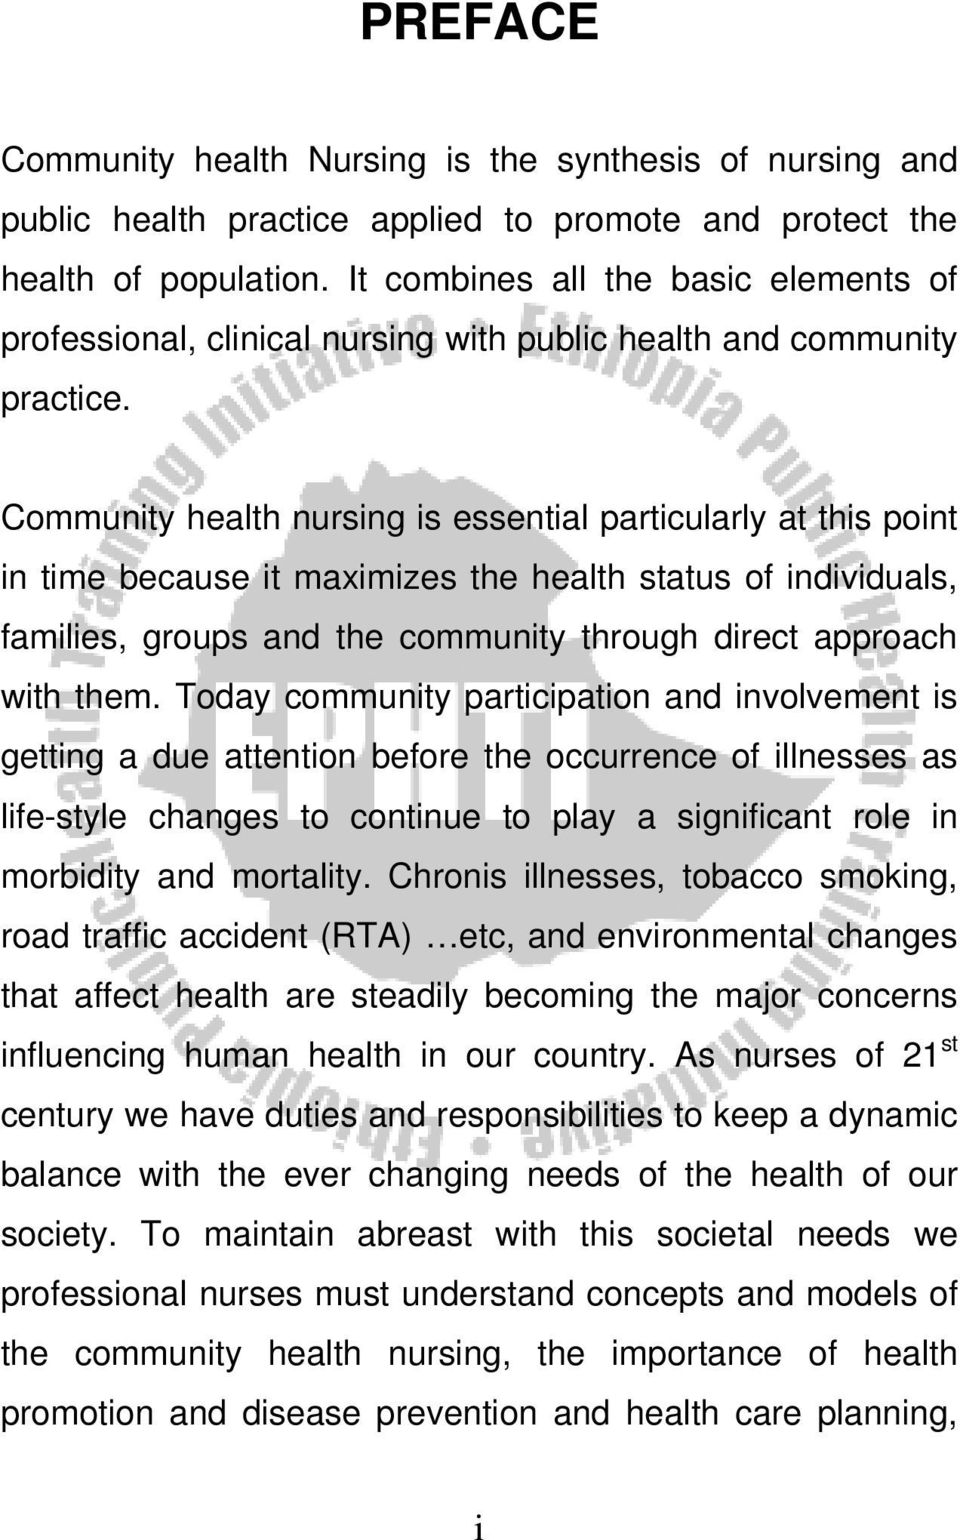 Community health nursing is essential particularly at this point in time because it maximizes the health status of individuals, families, groups and the community through direct approach with them.